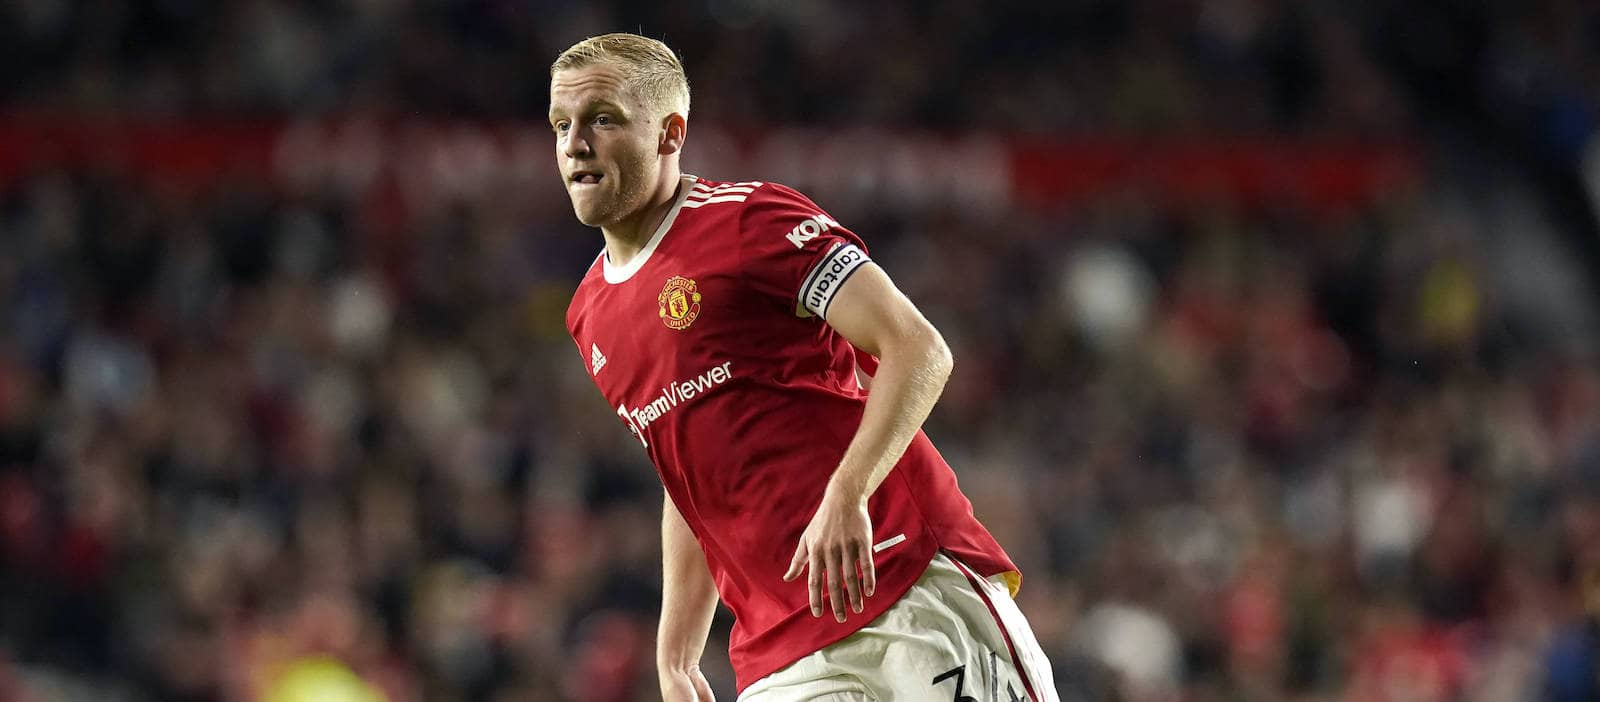 Donny van de Beek: Pundits blast Manchester United star's current  predicament - Man United News And Transfer News | The Peoples Person